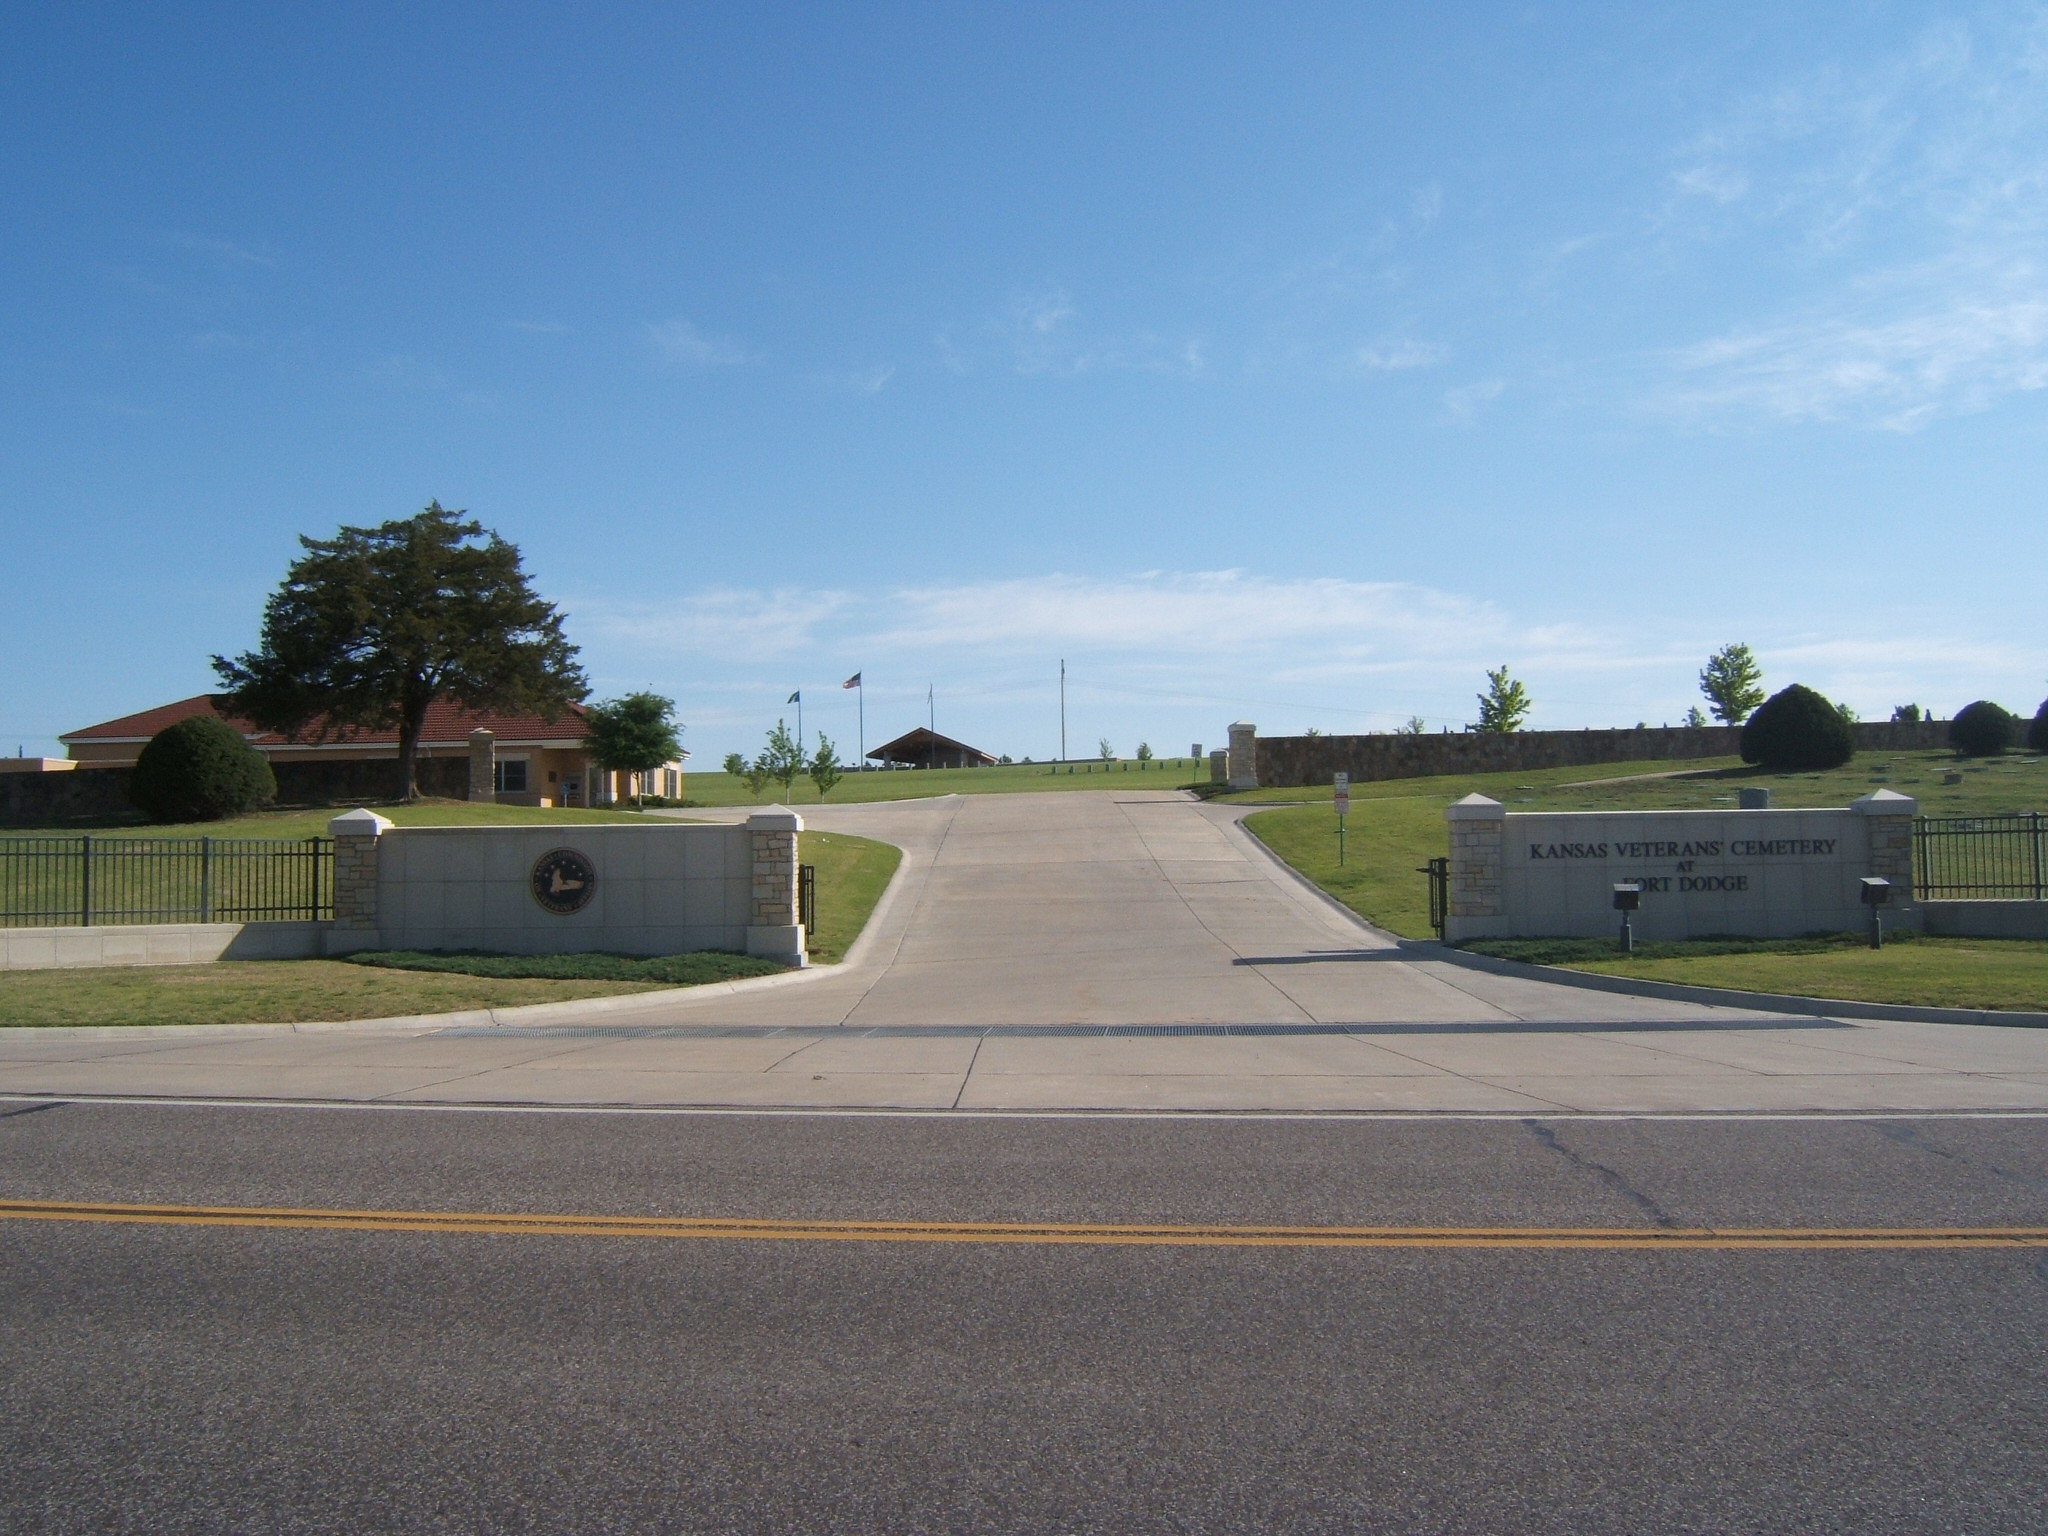 Kansas Veterans' Cemetery at Fort Dodge